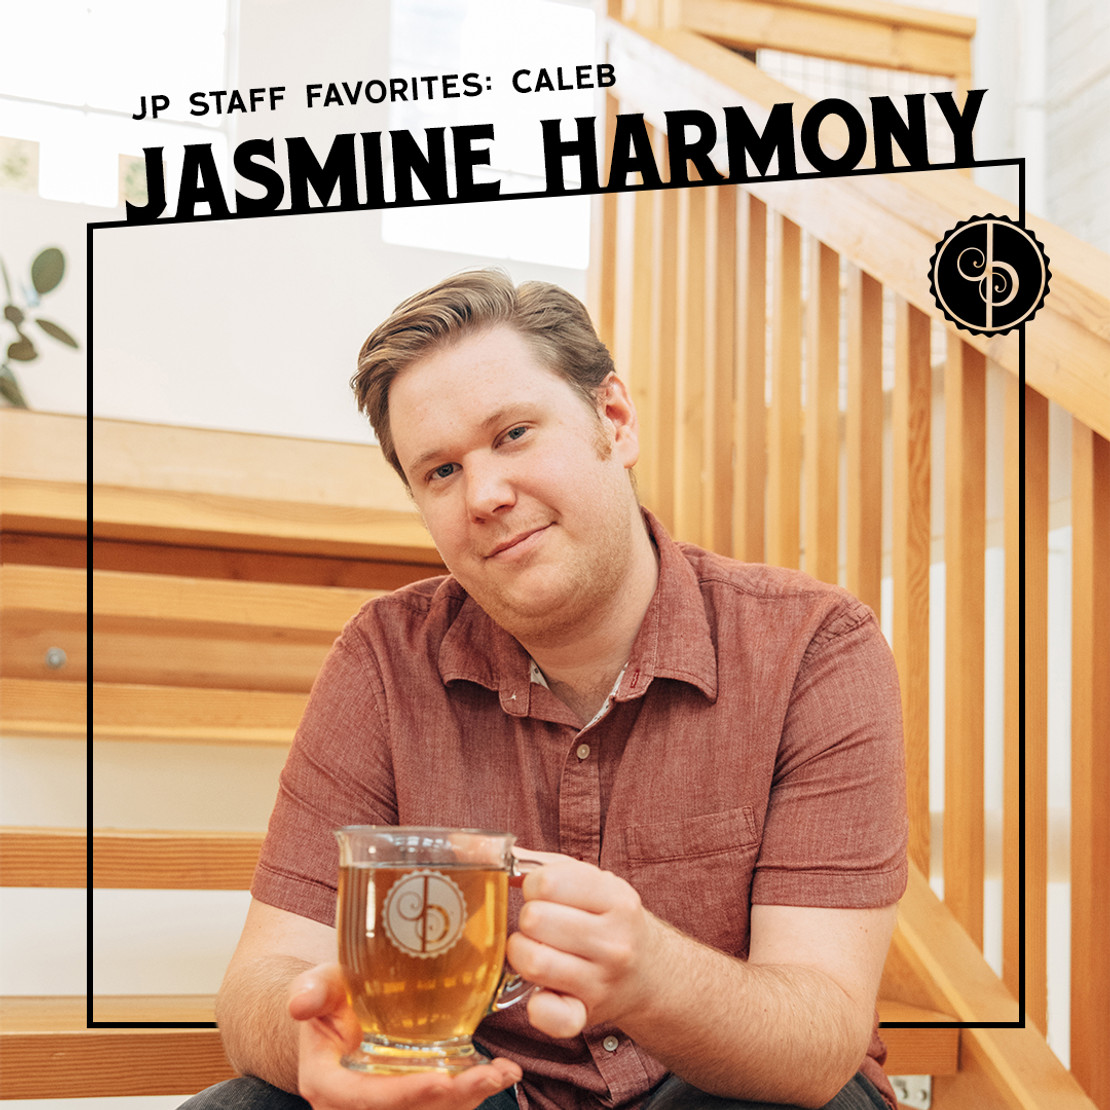 Staff Favorites: Caleb and Jasmine Harmony